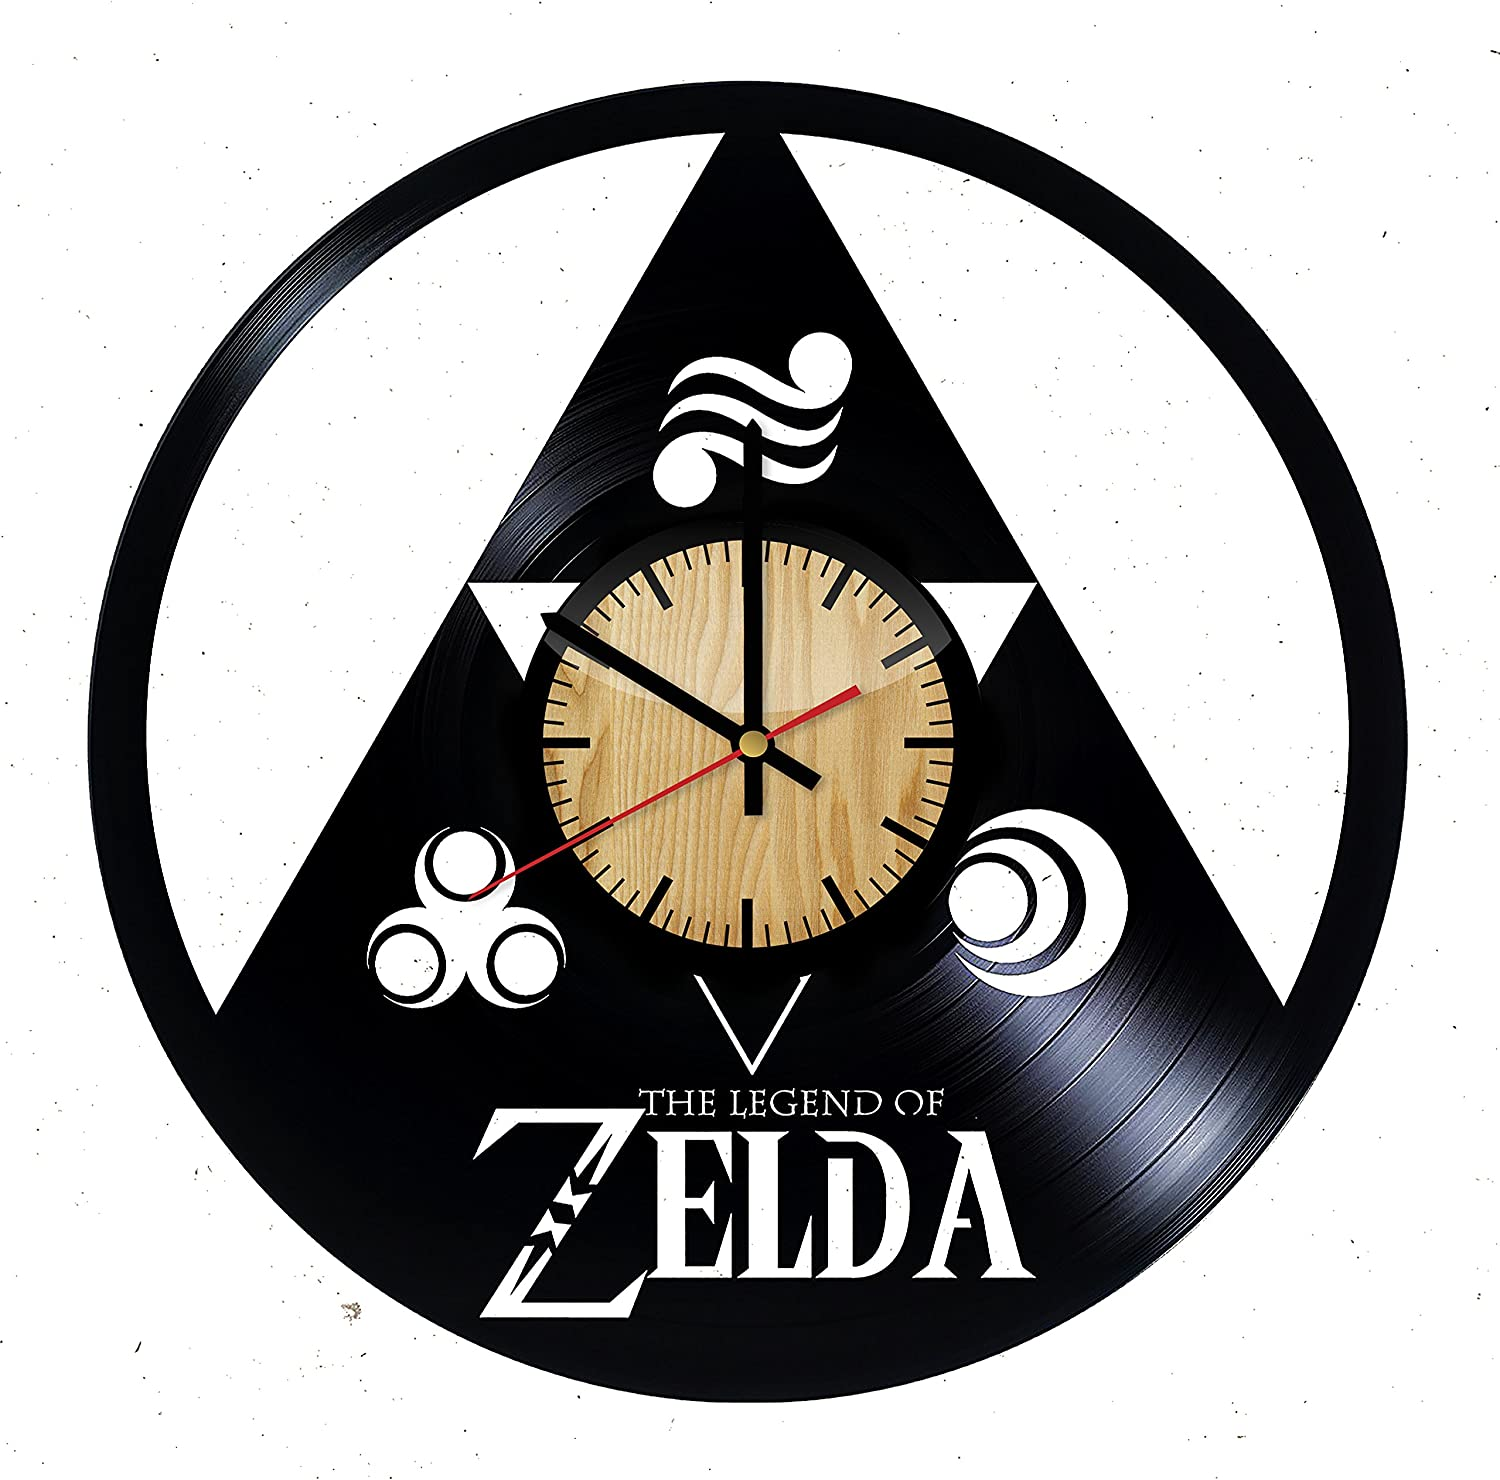 Get unique bedroom or living room wall decor The Legend of Zelda Emblem Design HANDMADE Vinyl Record Wall Clock Gift ideas for him and her